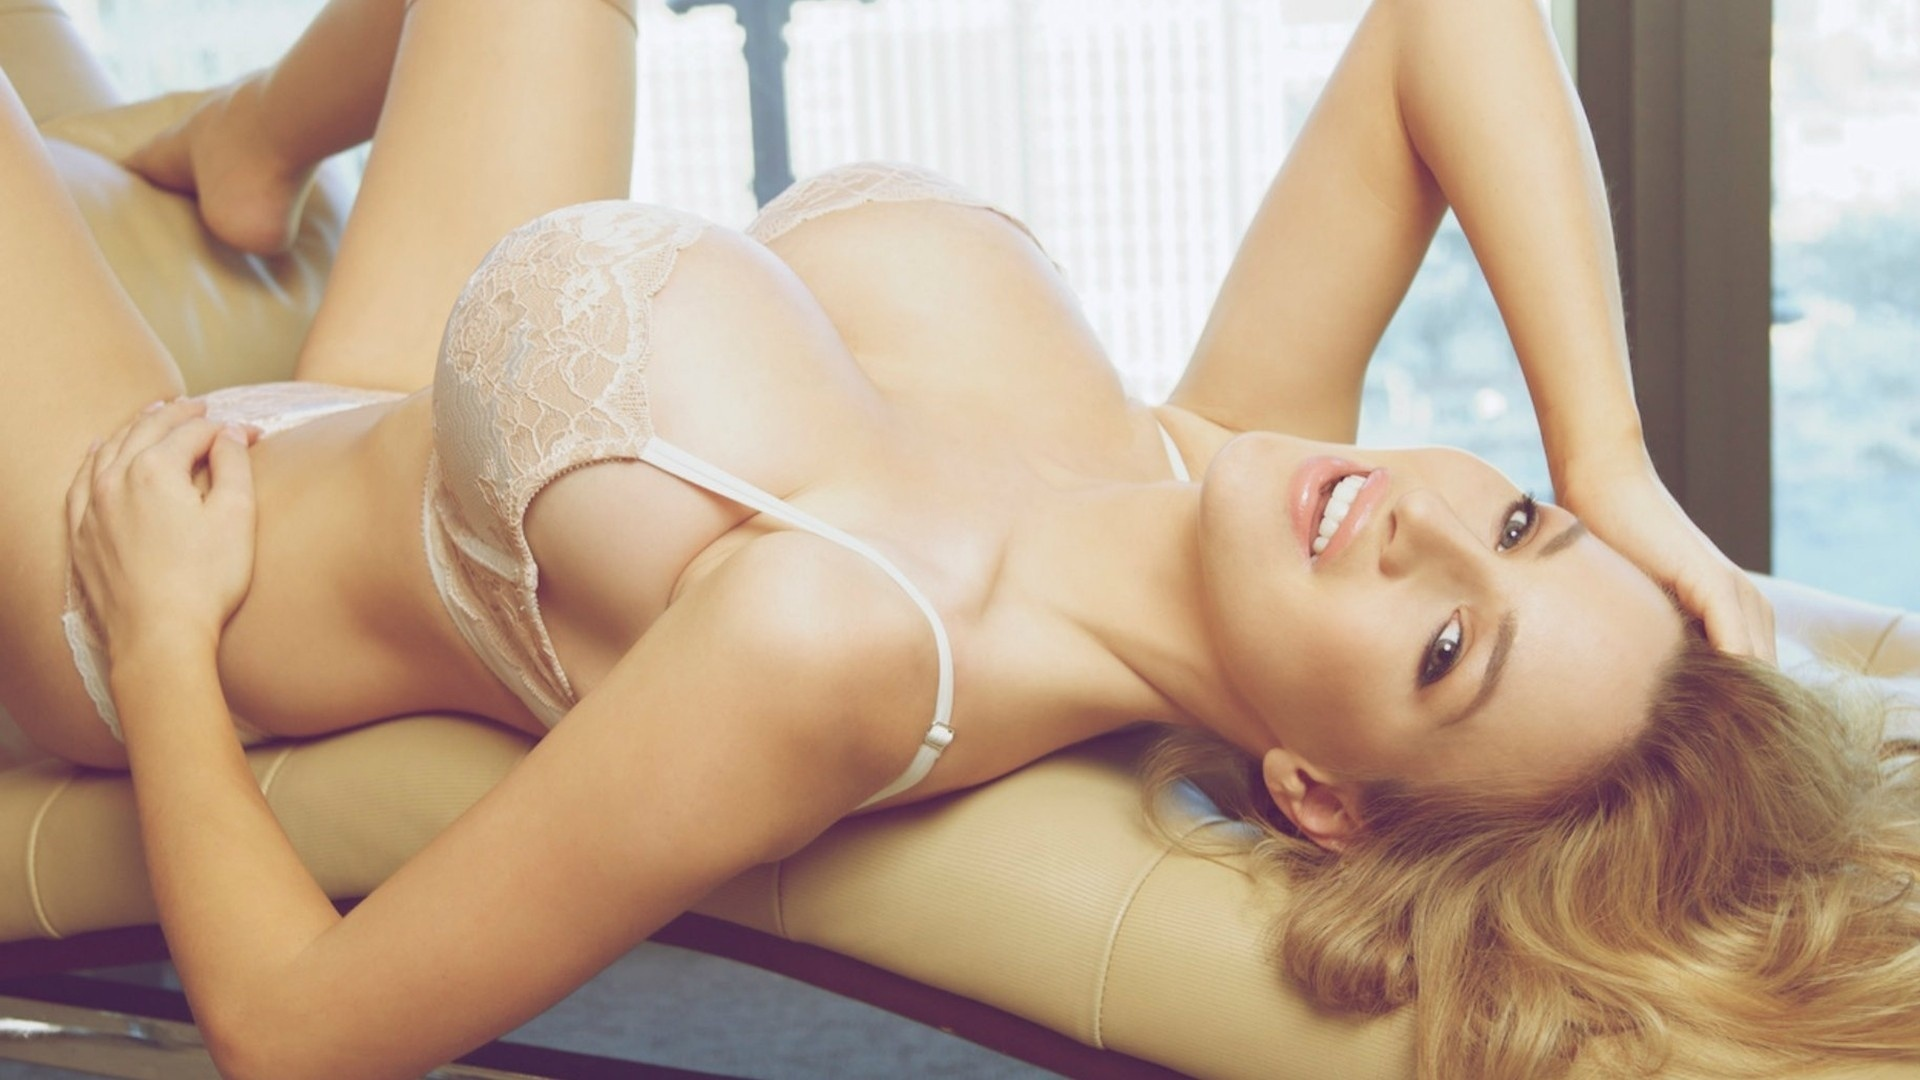 nude blonde laying down